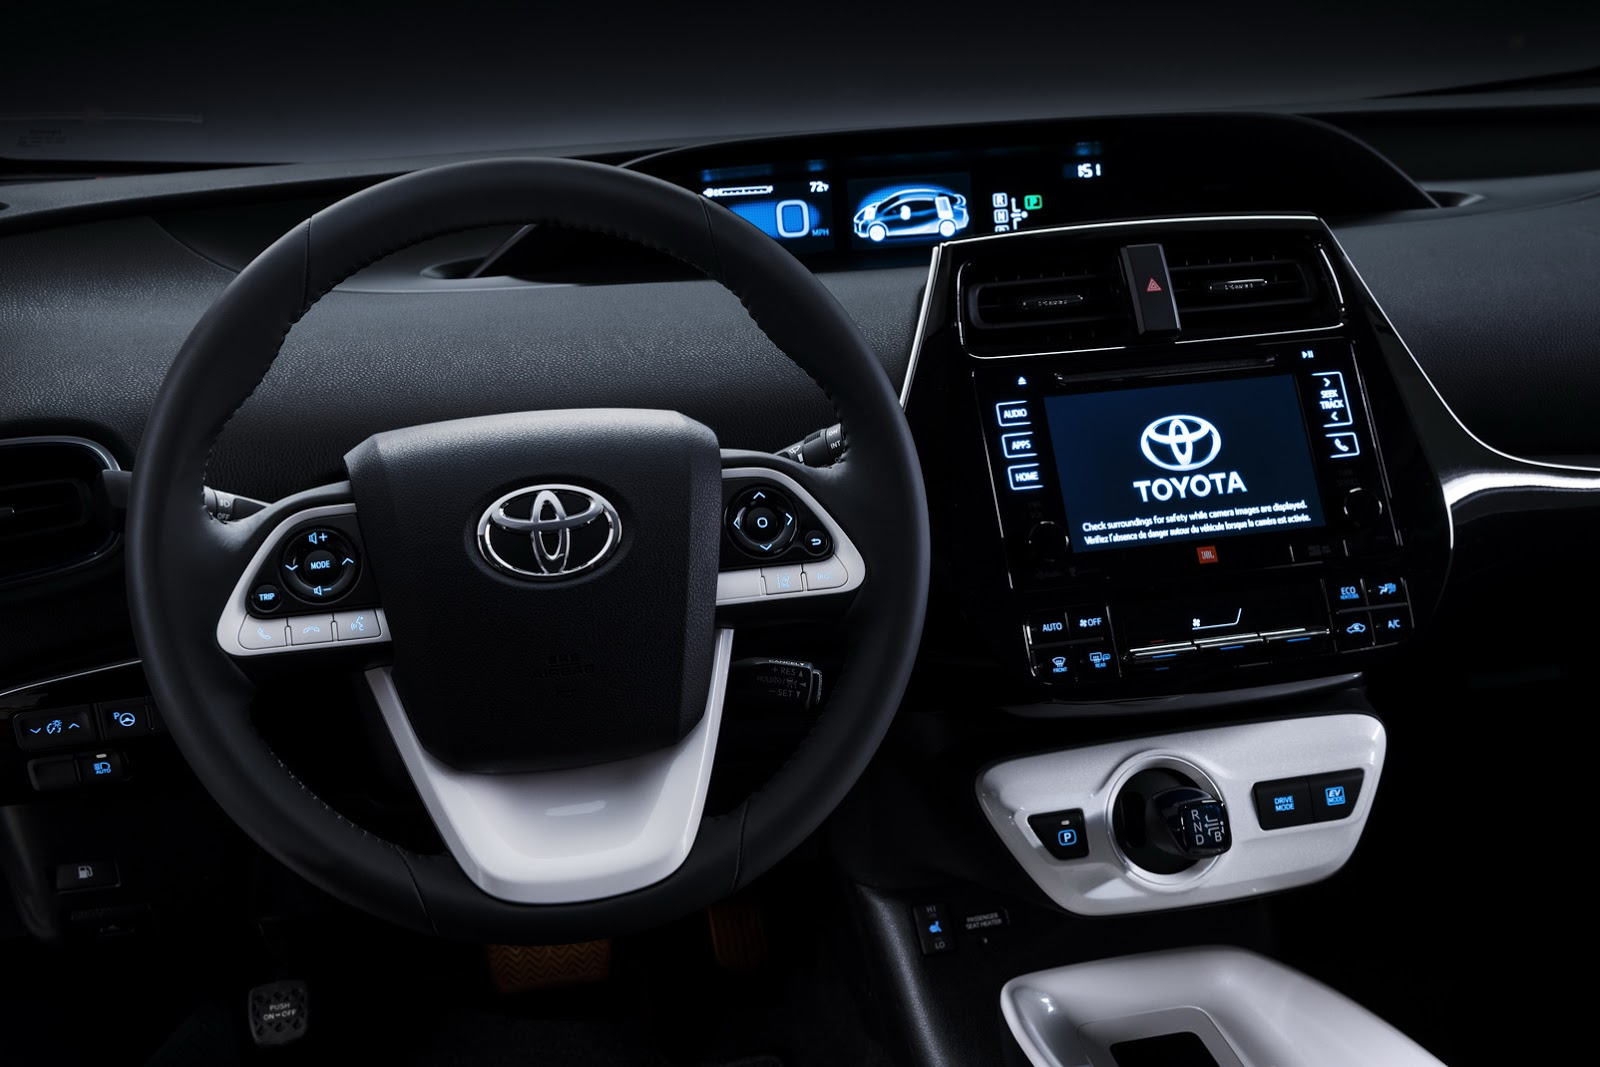 2016 Toyota Prius cockpit North American specification official image